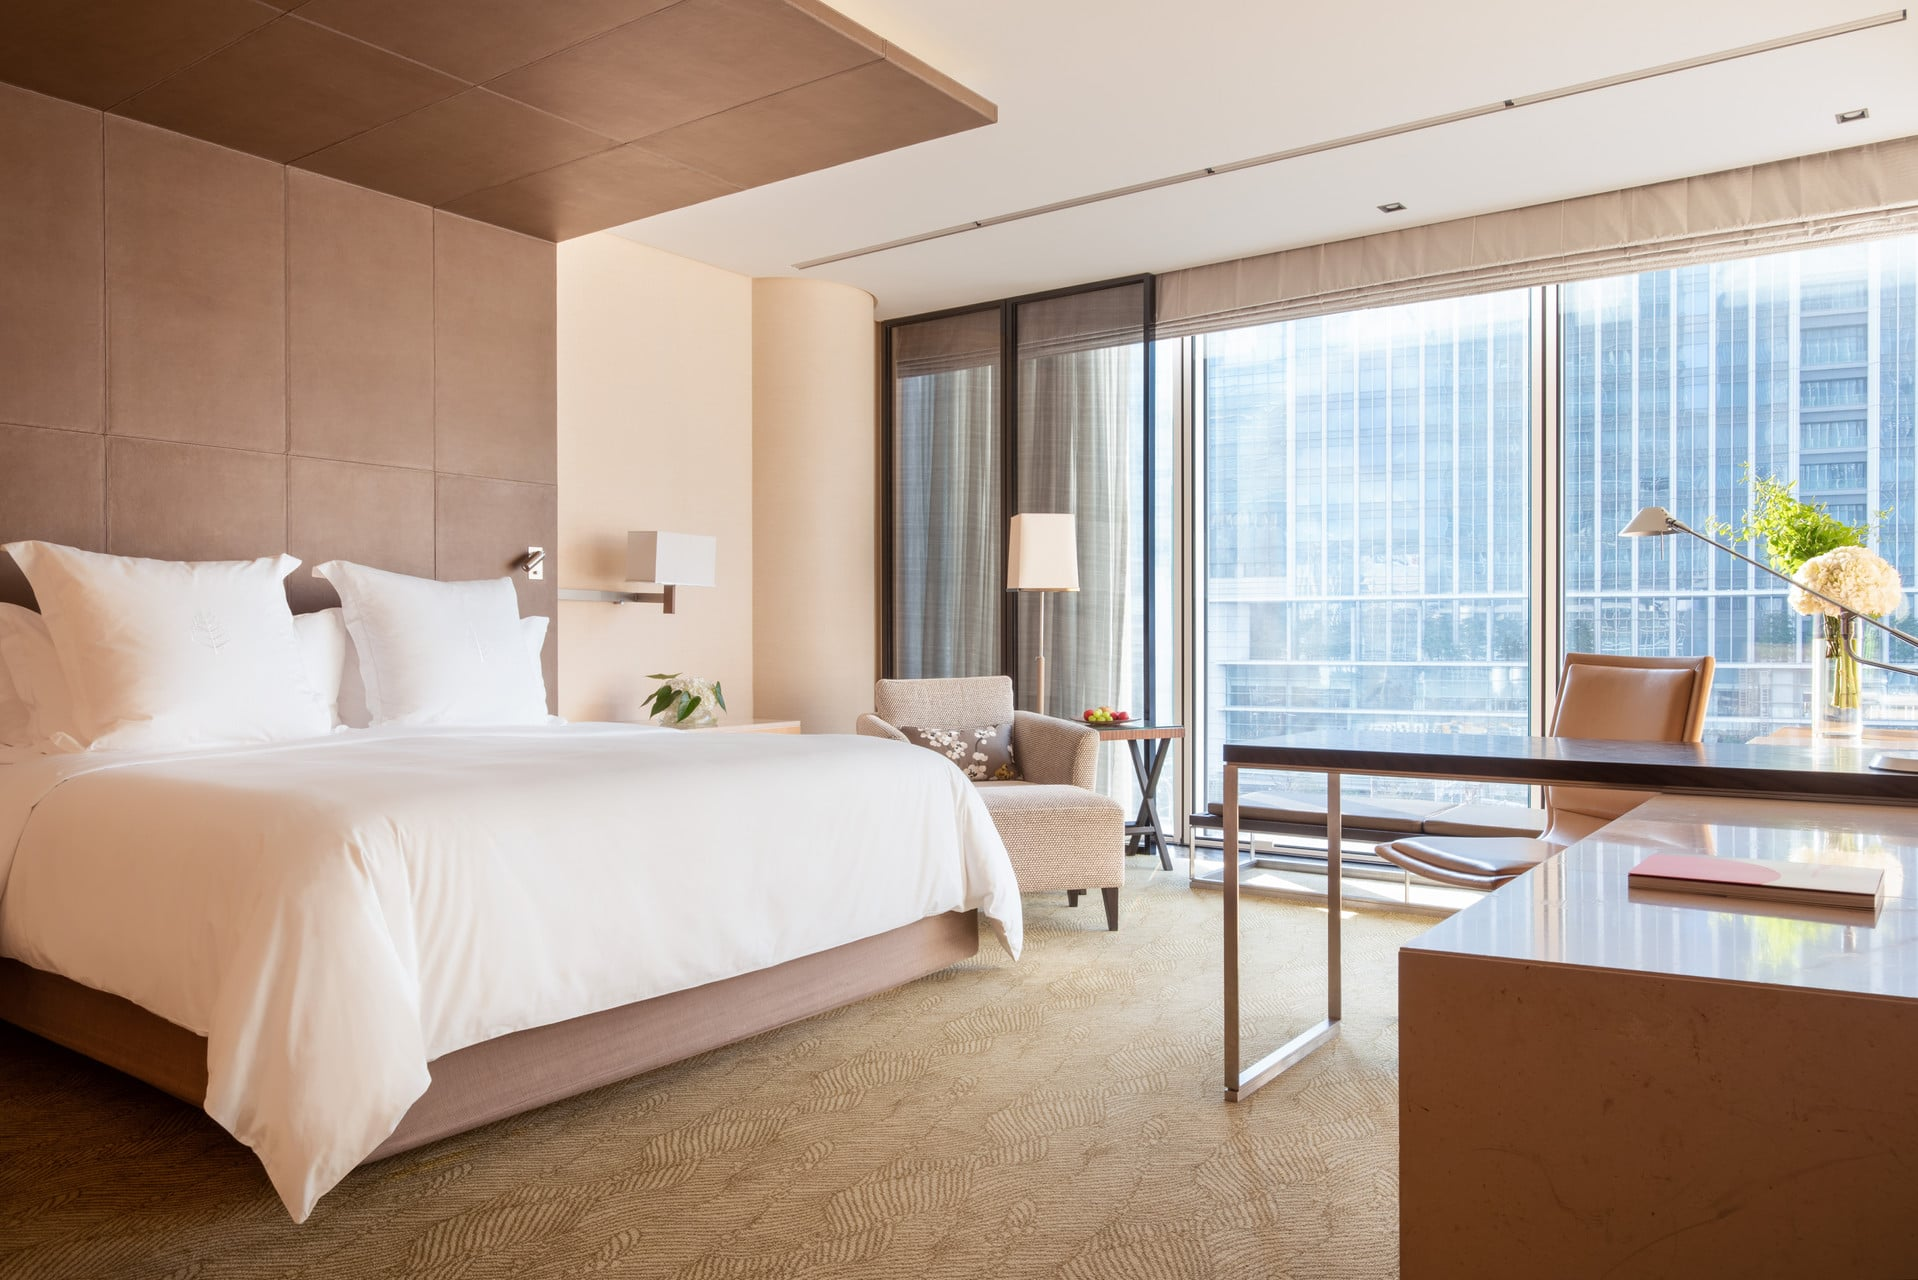 The interior of a Deluxe King room looking out toward the city view.